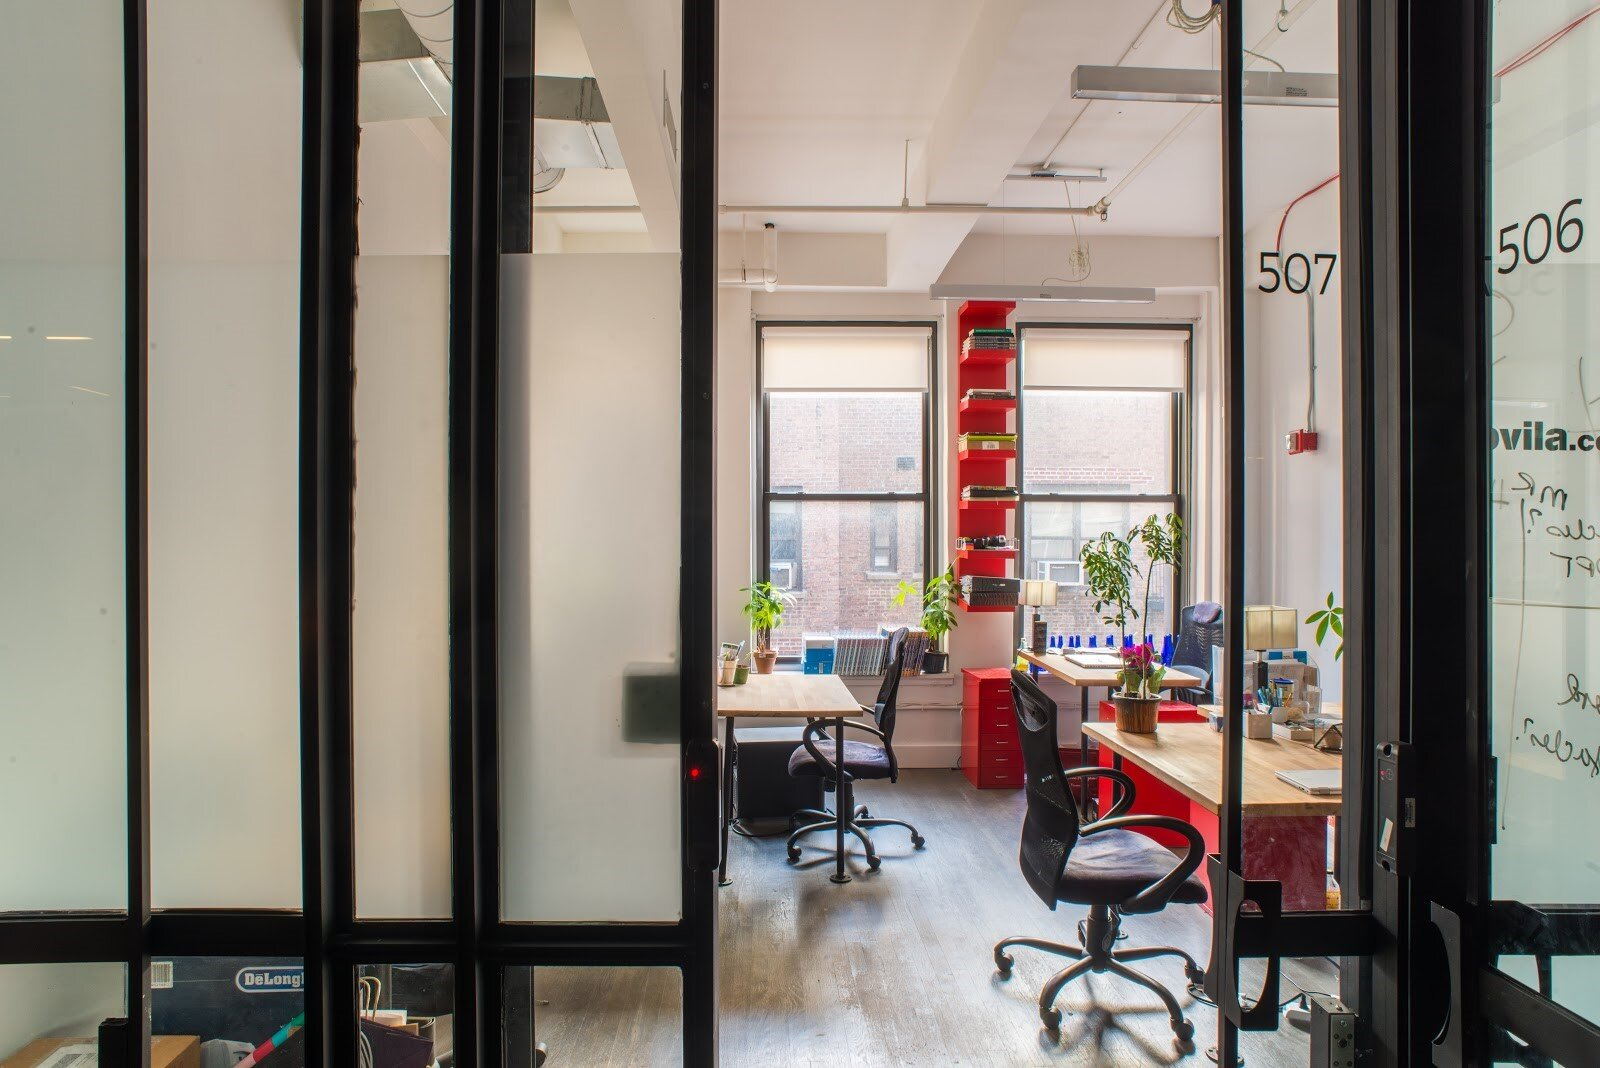 An open office with red desks and cabinets